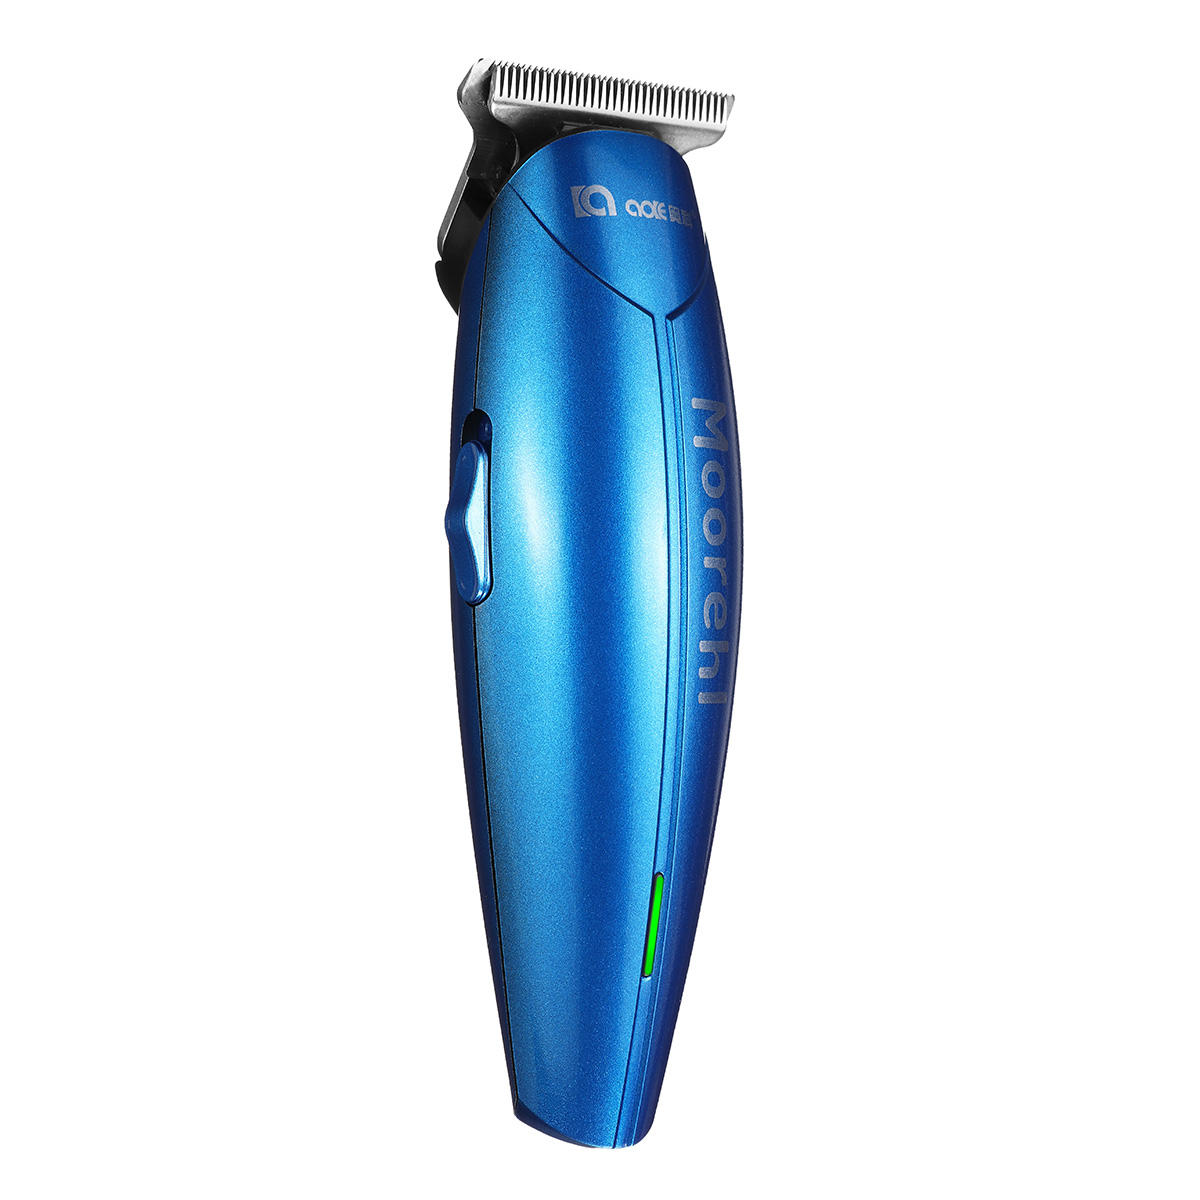 Mens Hair Trimmer Clipper Rechargeable Electric Shaver - 3